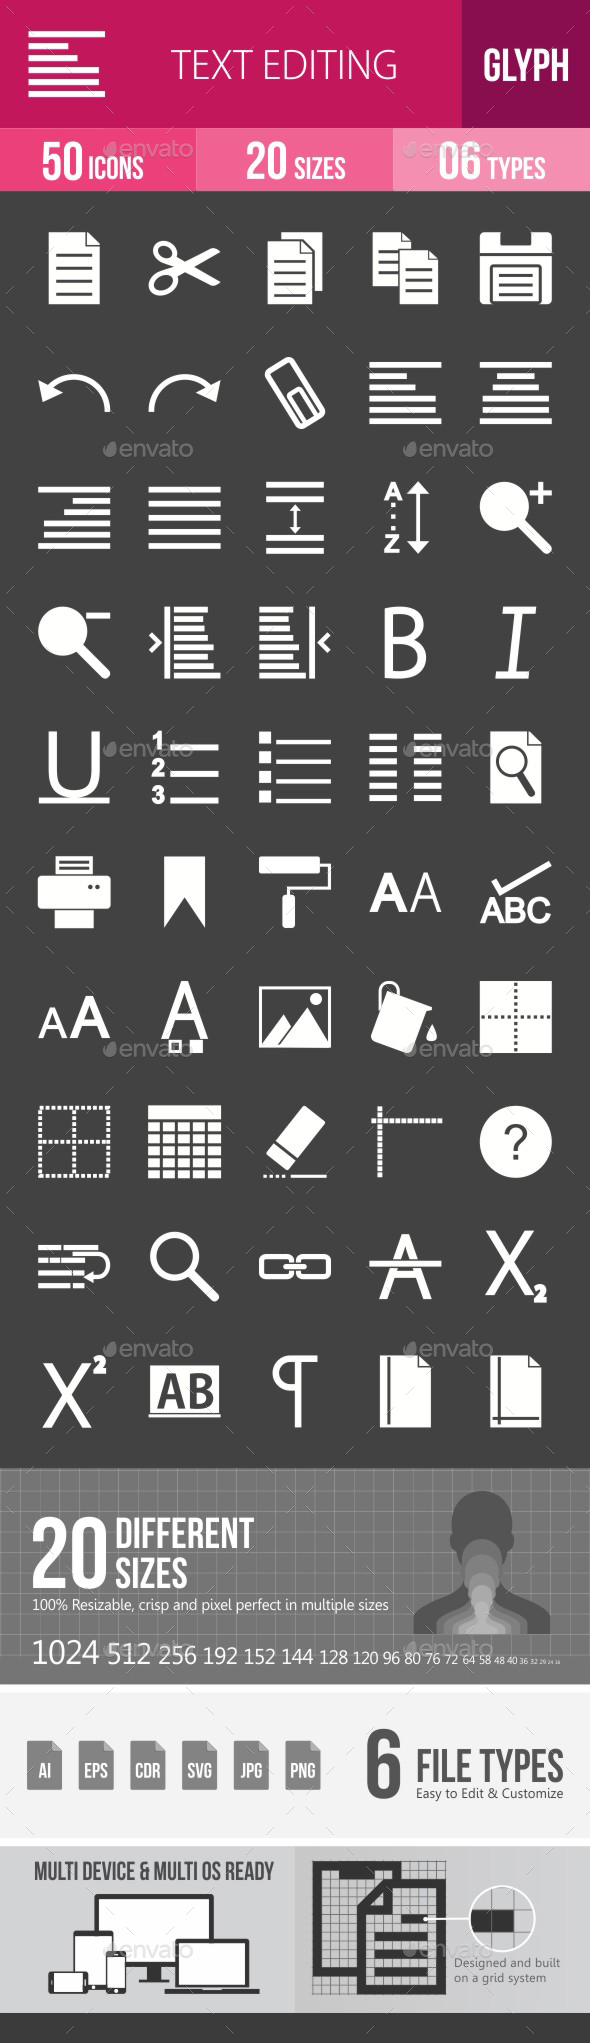 Text Editing Glyph Inverted Icons - Icons